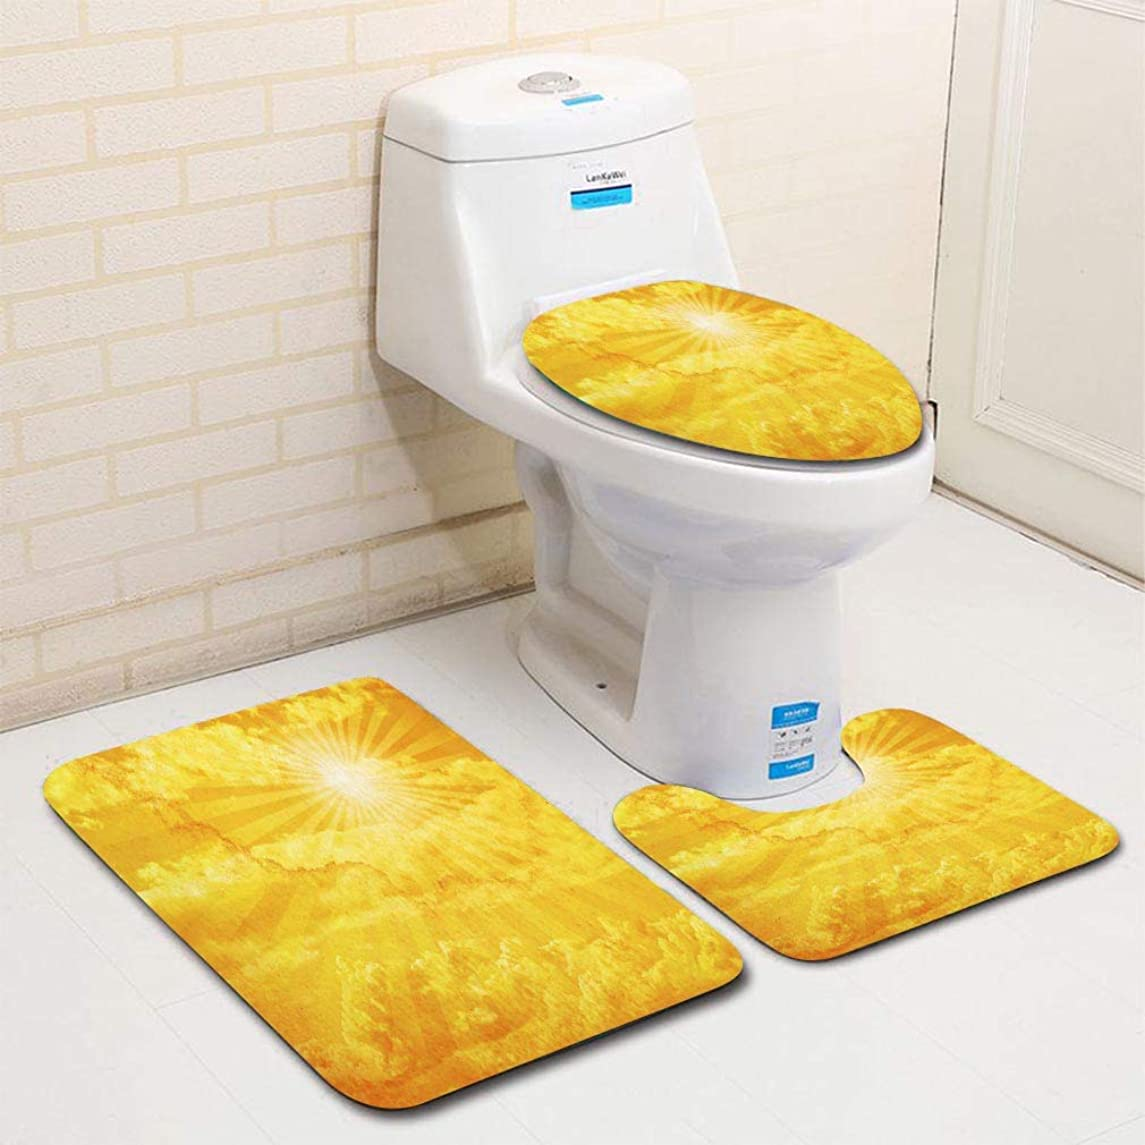 MTSJTliangwan Home Bathroom 3 Piece Sets, Included Bath Area Rug+Contour Mat+Lid Toilet Seat Cover Yellow Watercolor of The Sun Bursting Through Clouds Flannel Carpet